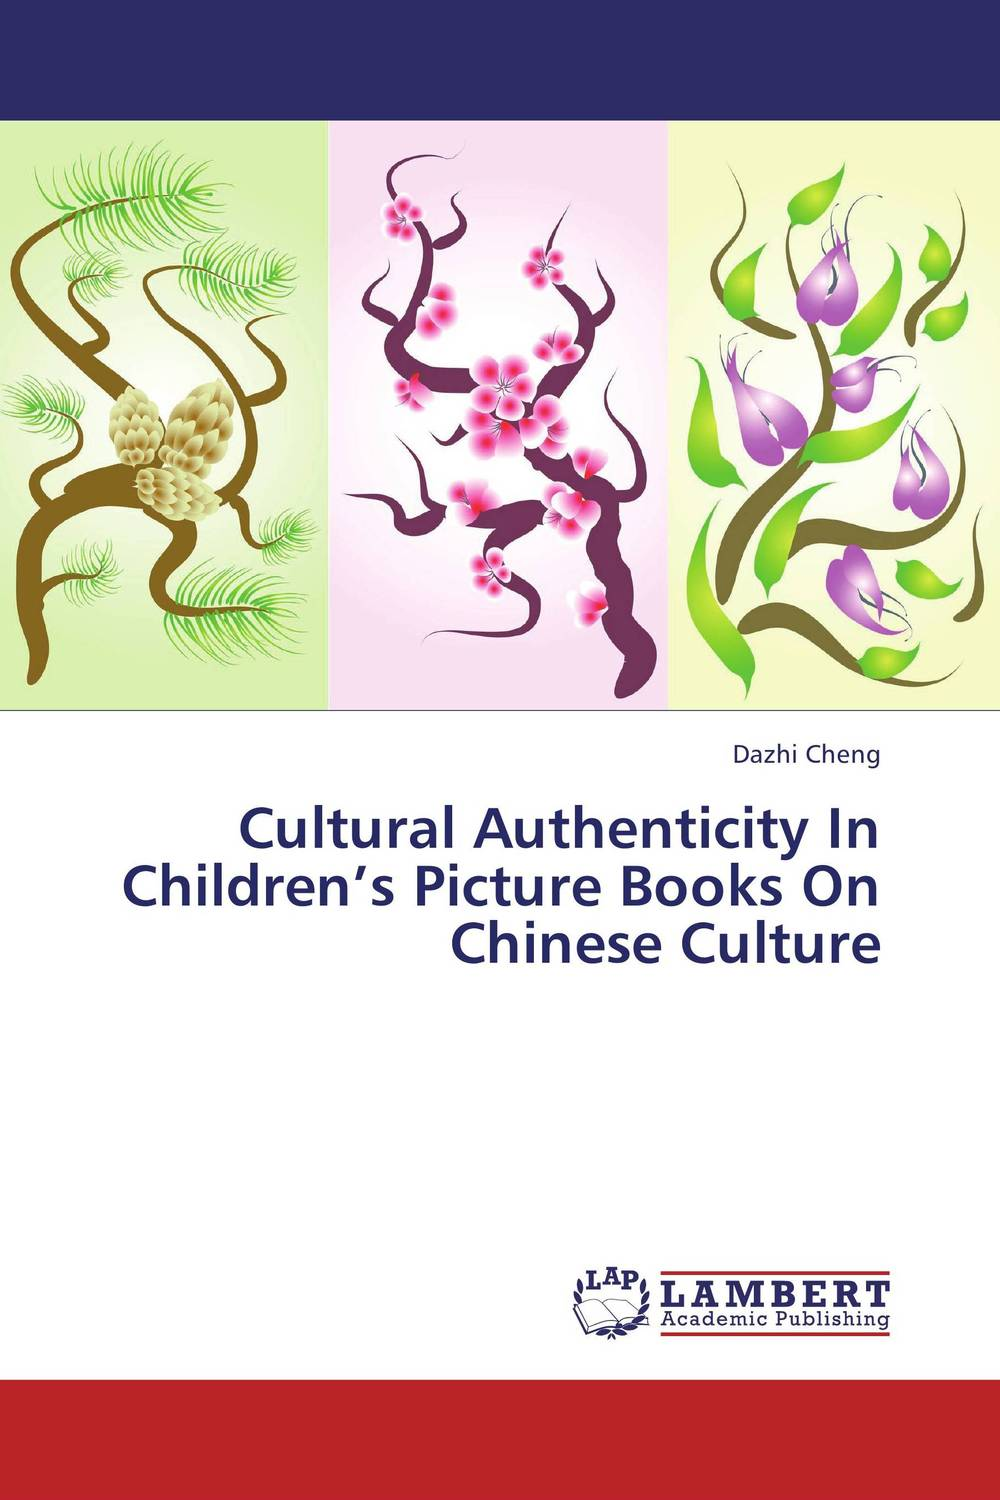 Cultural Authenticity In Children's Picture Books On Chinese Culture a bite of china chinese cuisine charm tour chinese food culture books jiangzhe sichuan hunan hometown dishes